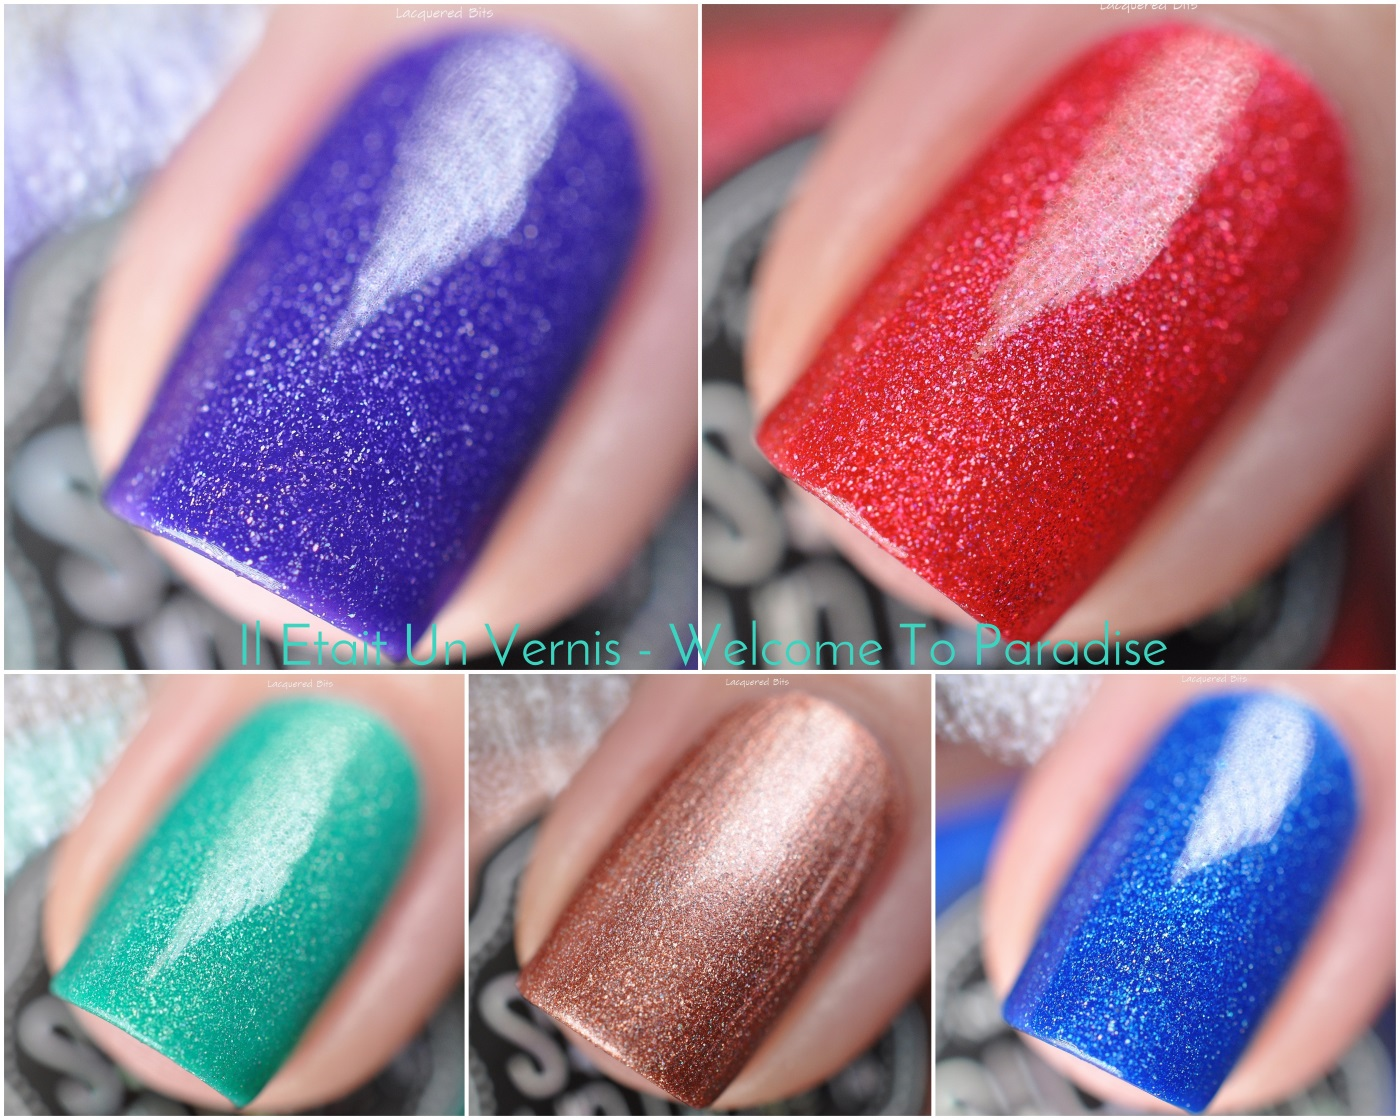 Il Etait Un Vernis - Welcome To Paradise - Swatches and Review